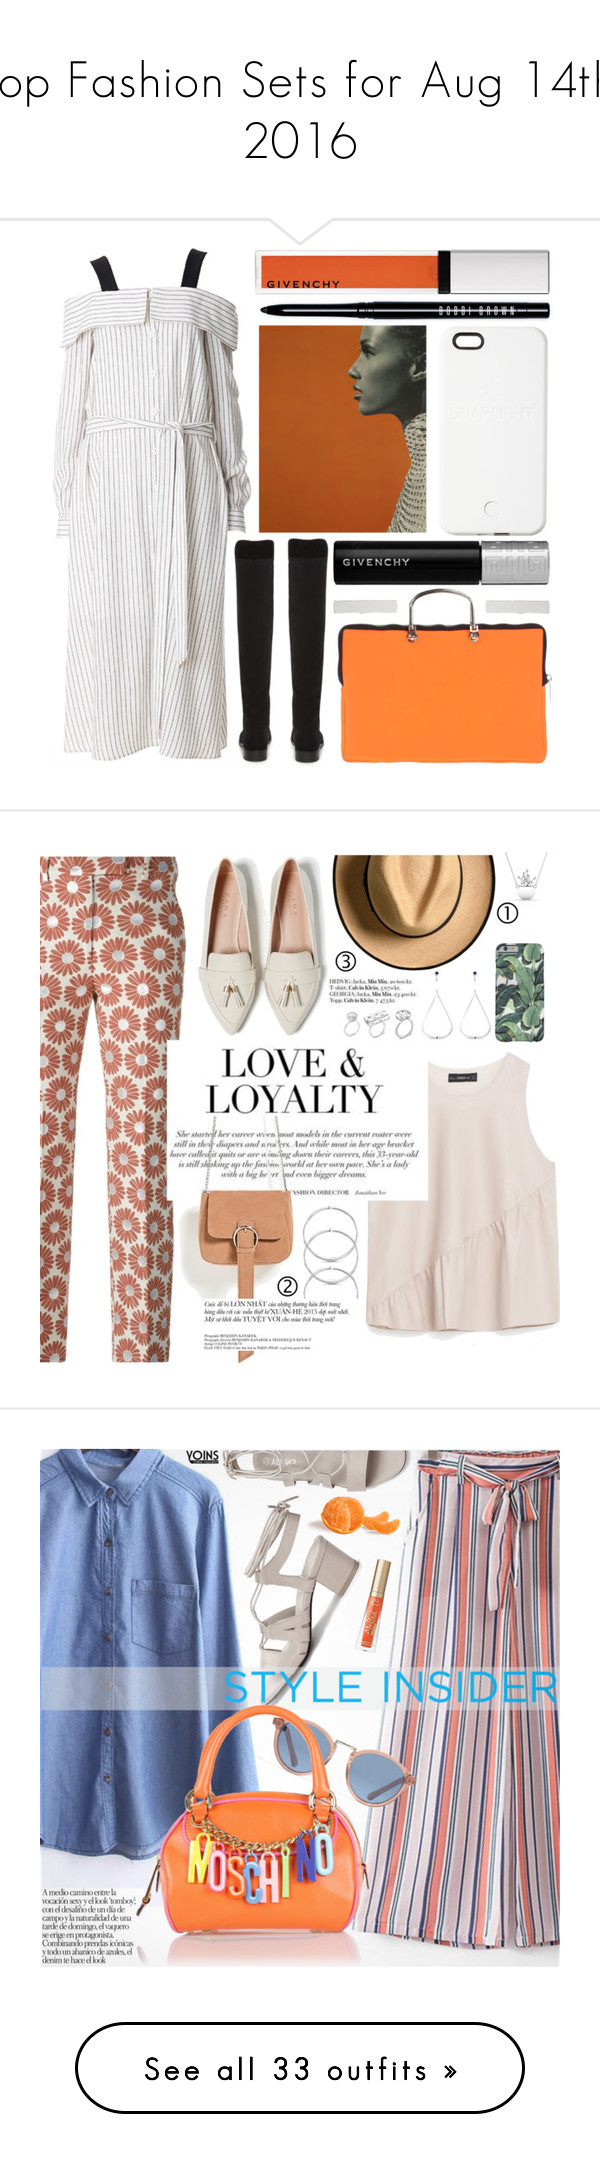 """""""Top Fashion Sets for Aug 14th, 2016"""" by polyvore ❤ liked on Polyvore featuring TIBI, Stuart Weitzman, Leghilà, Givenchy, SnapLight, Bobbi Brown Cosmetics, minimalistic, pinstripes, Maison Margiela and Zara"""